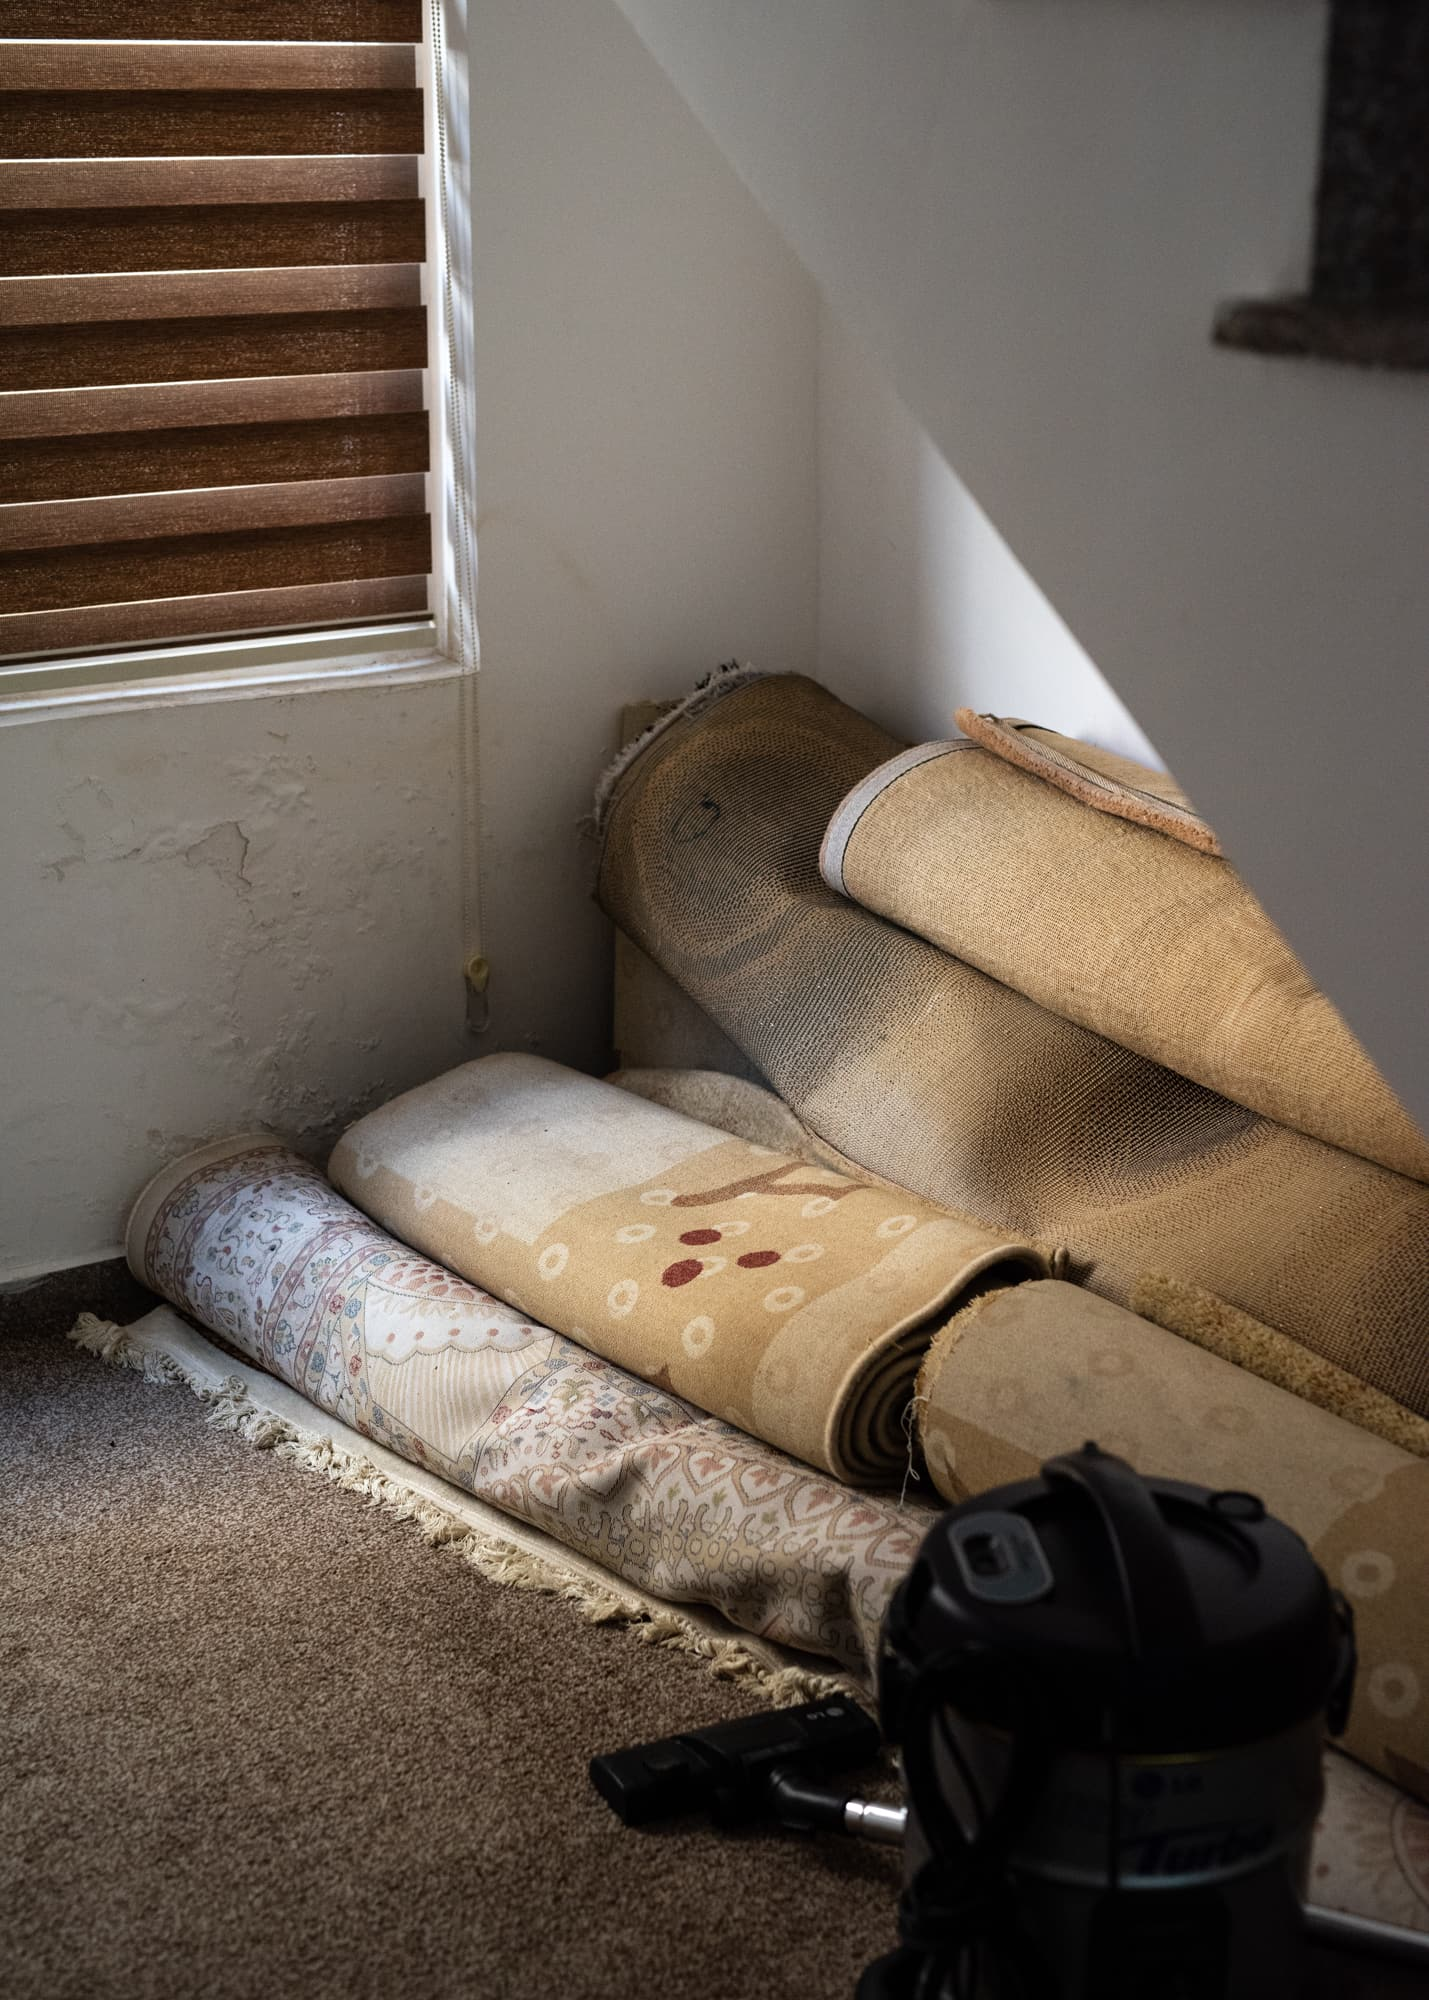 Unused carpets in Abdullah Kurdi's home on Sept 02, 2019, in Erbil, Iraq. He doesn't own the house and doesn't feel at home.